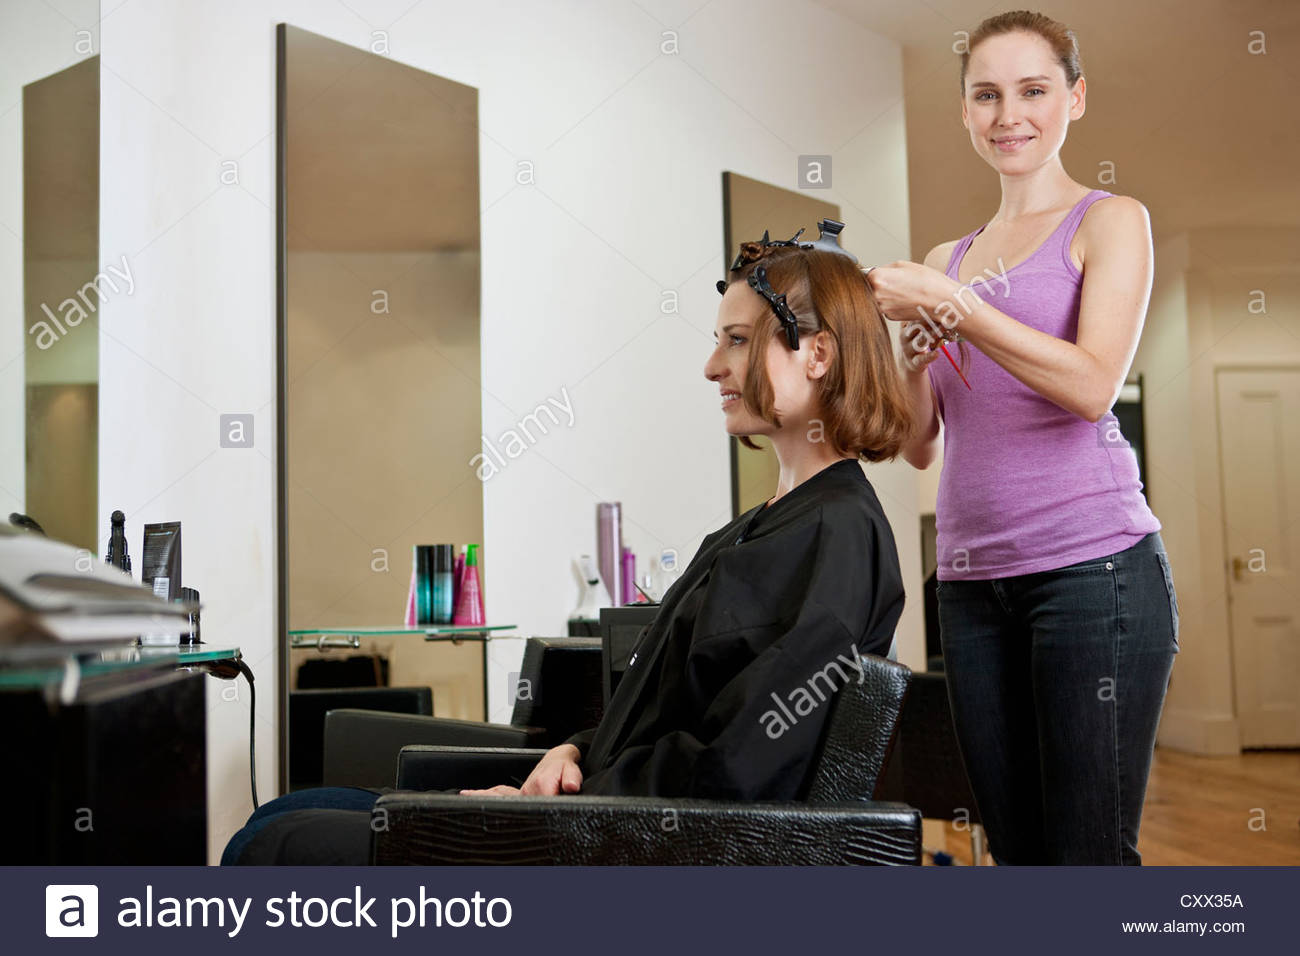 A female hairdresser colouring a female clients hair, smiling to camera - Stock Image